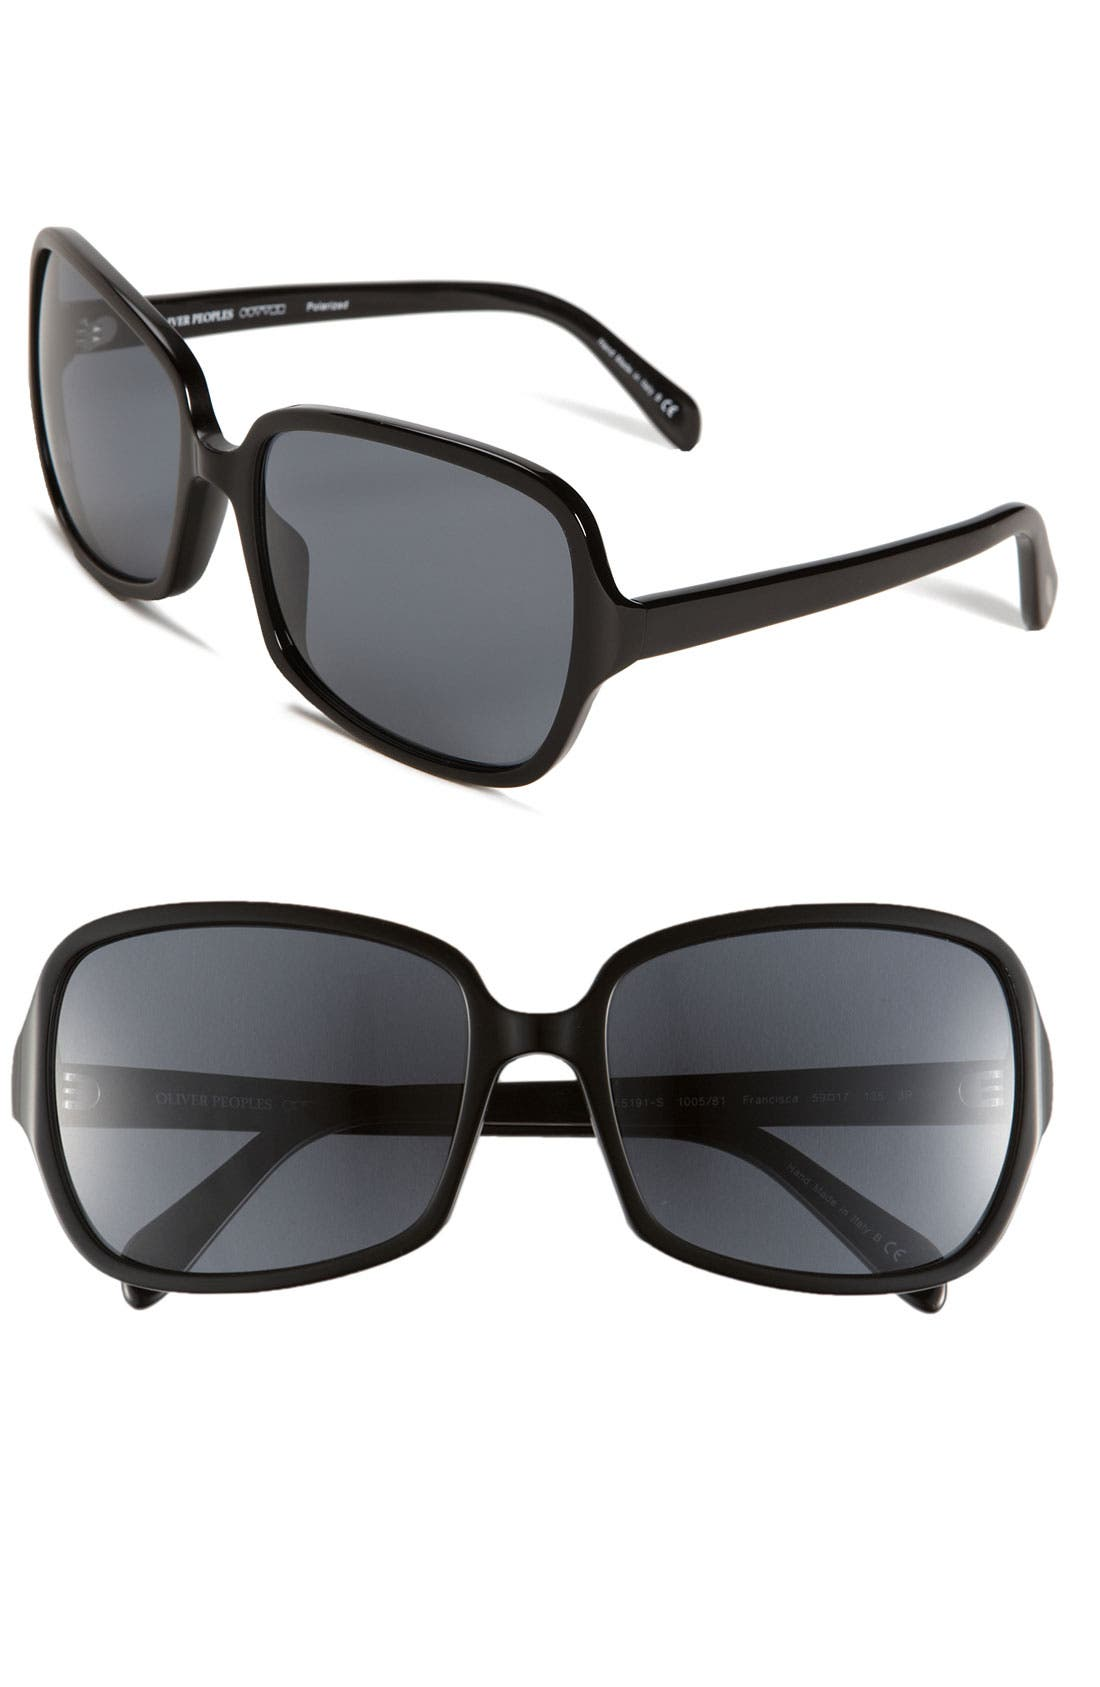 Main Image - Oliver Peoples 'Francisca' 59mm Retro Sunglasses